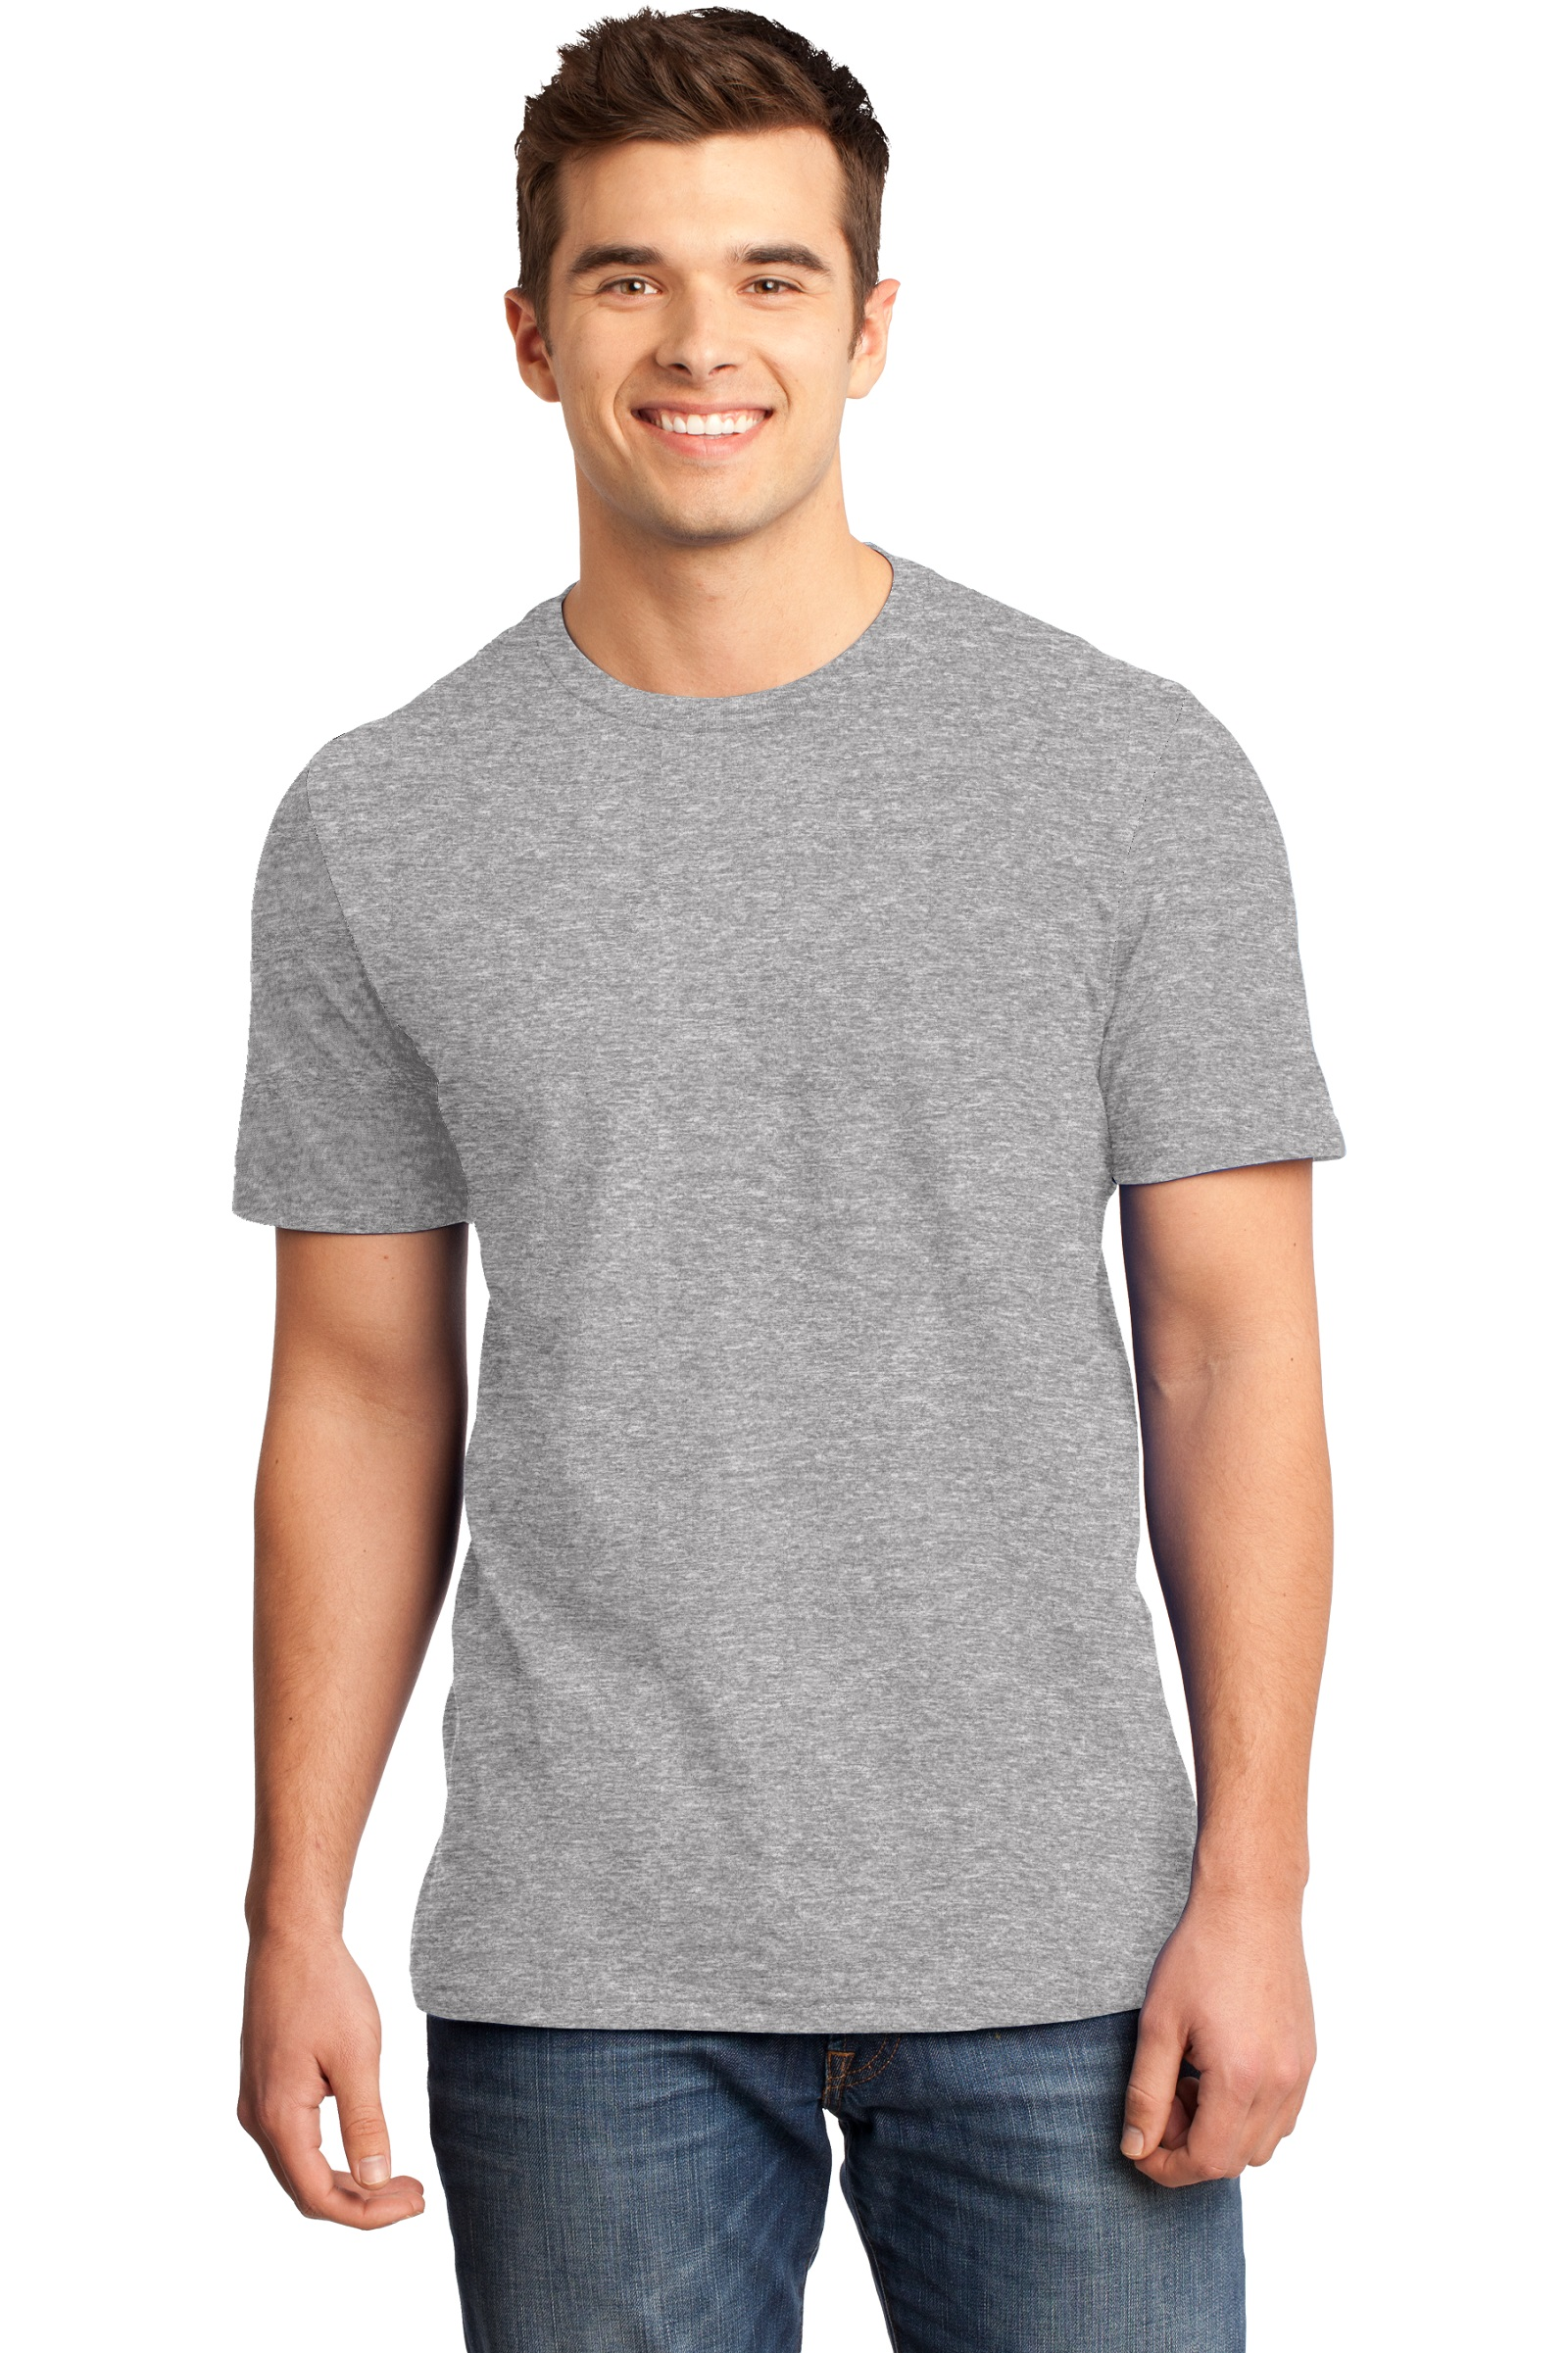 District Printed Men's Very Important Tee